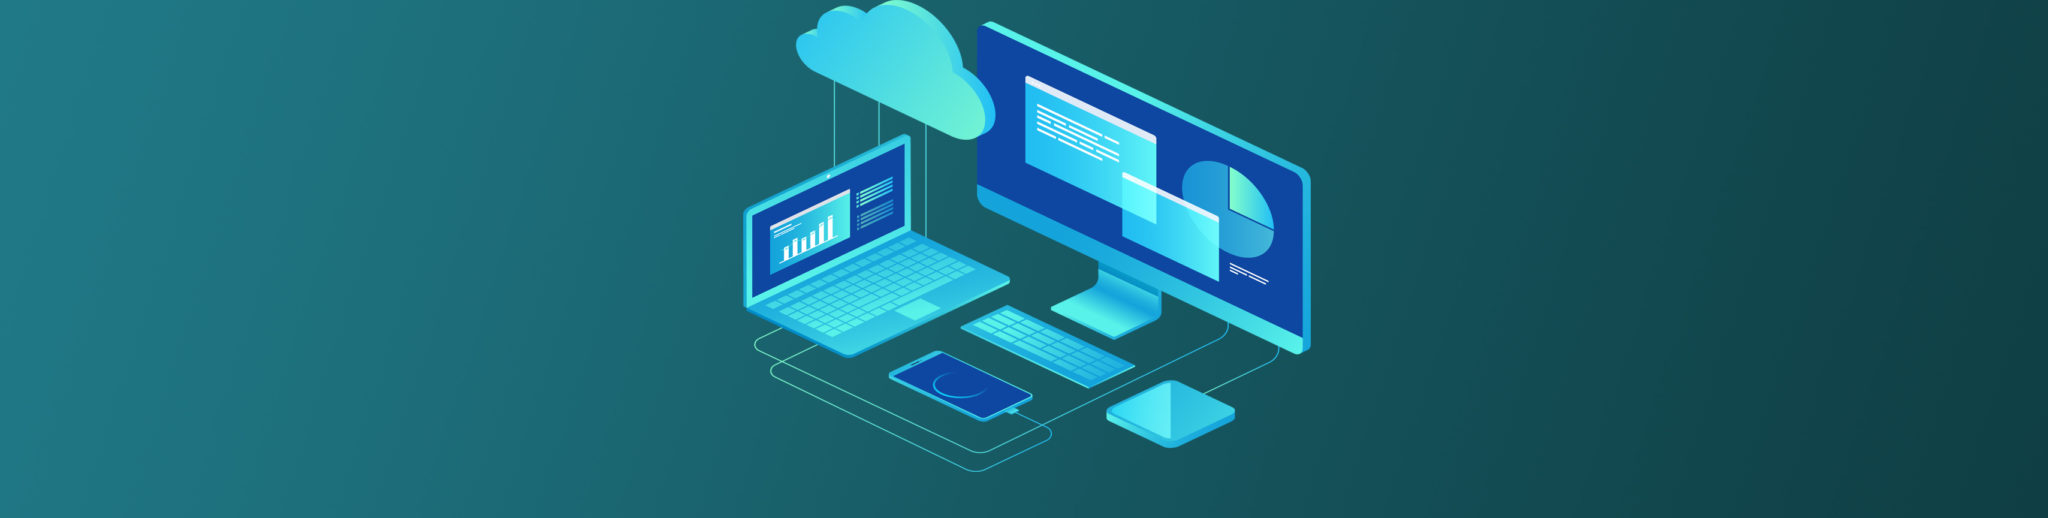 Top VM backup and recovery solutions for cloud applications